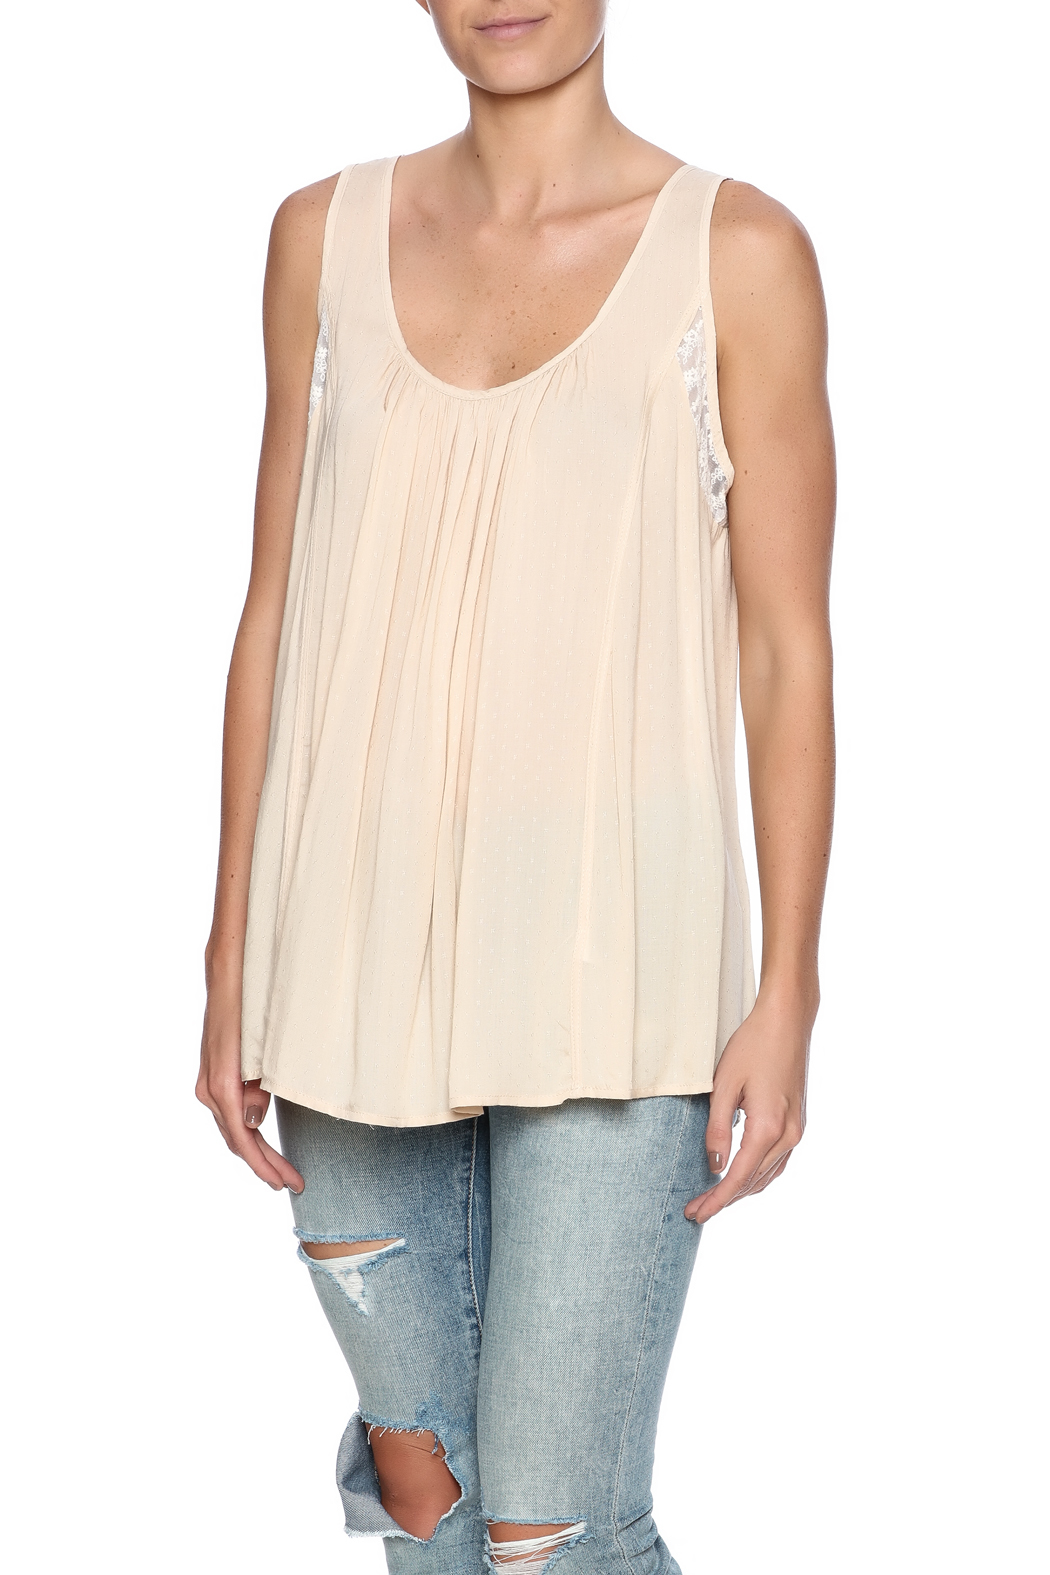 Kori Mixed Lace Top - Front Cropped Image